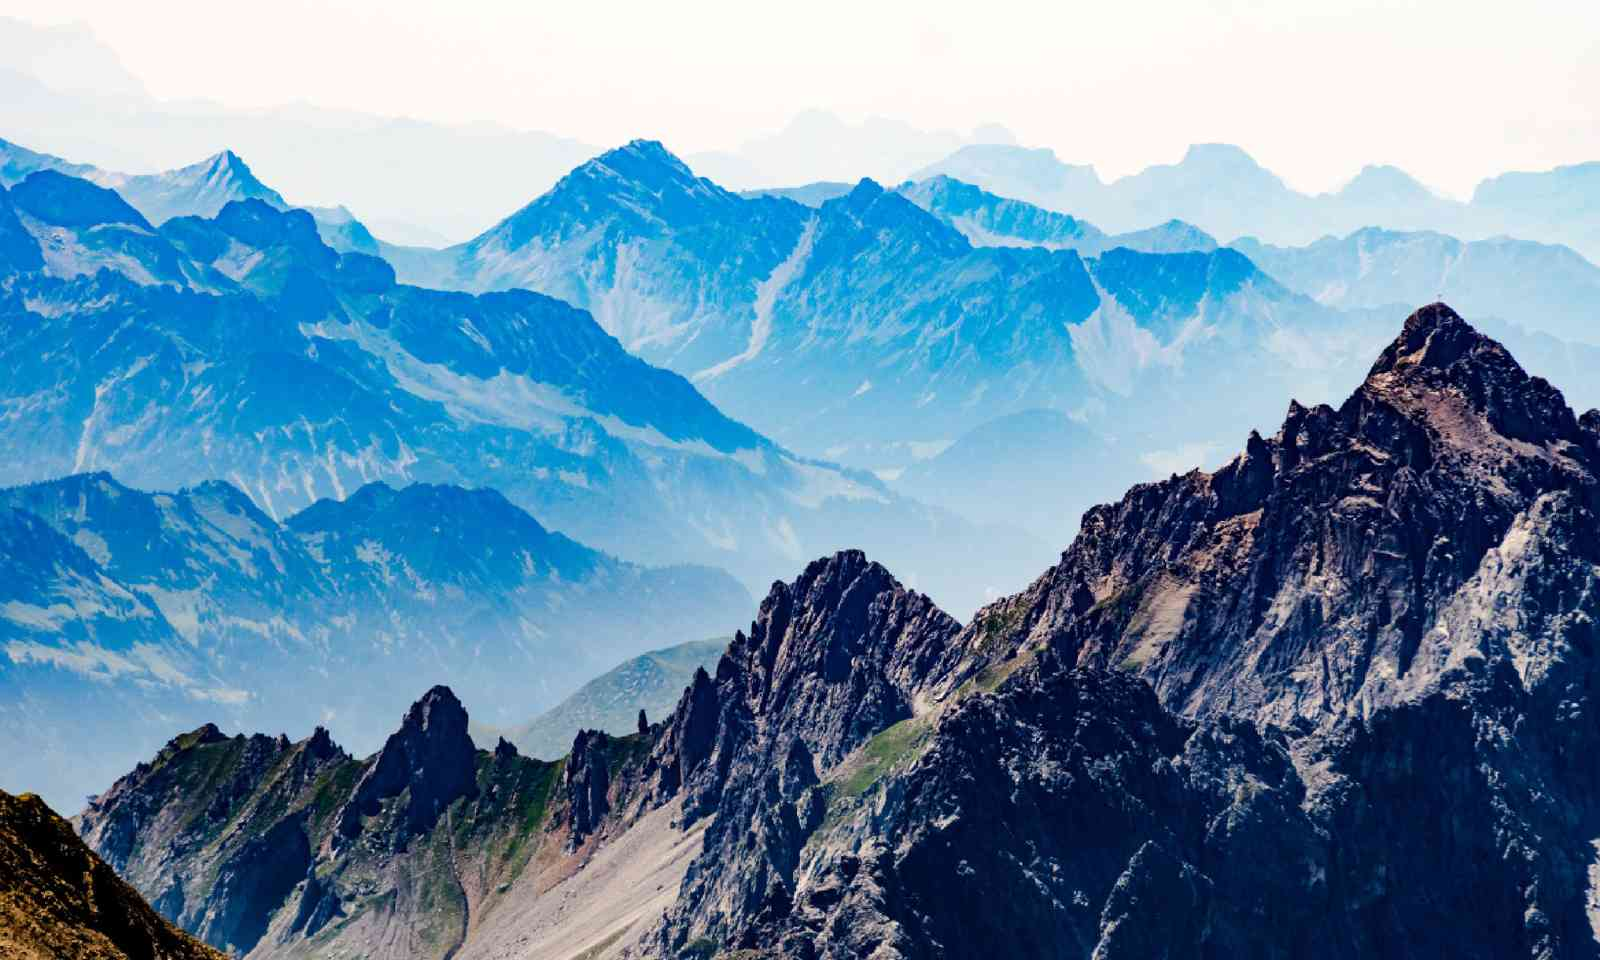 St. Anton am Arlberg in August (Shutterstock)